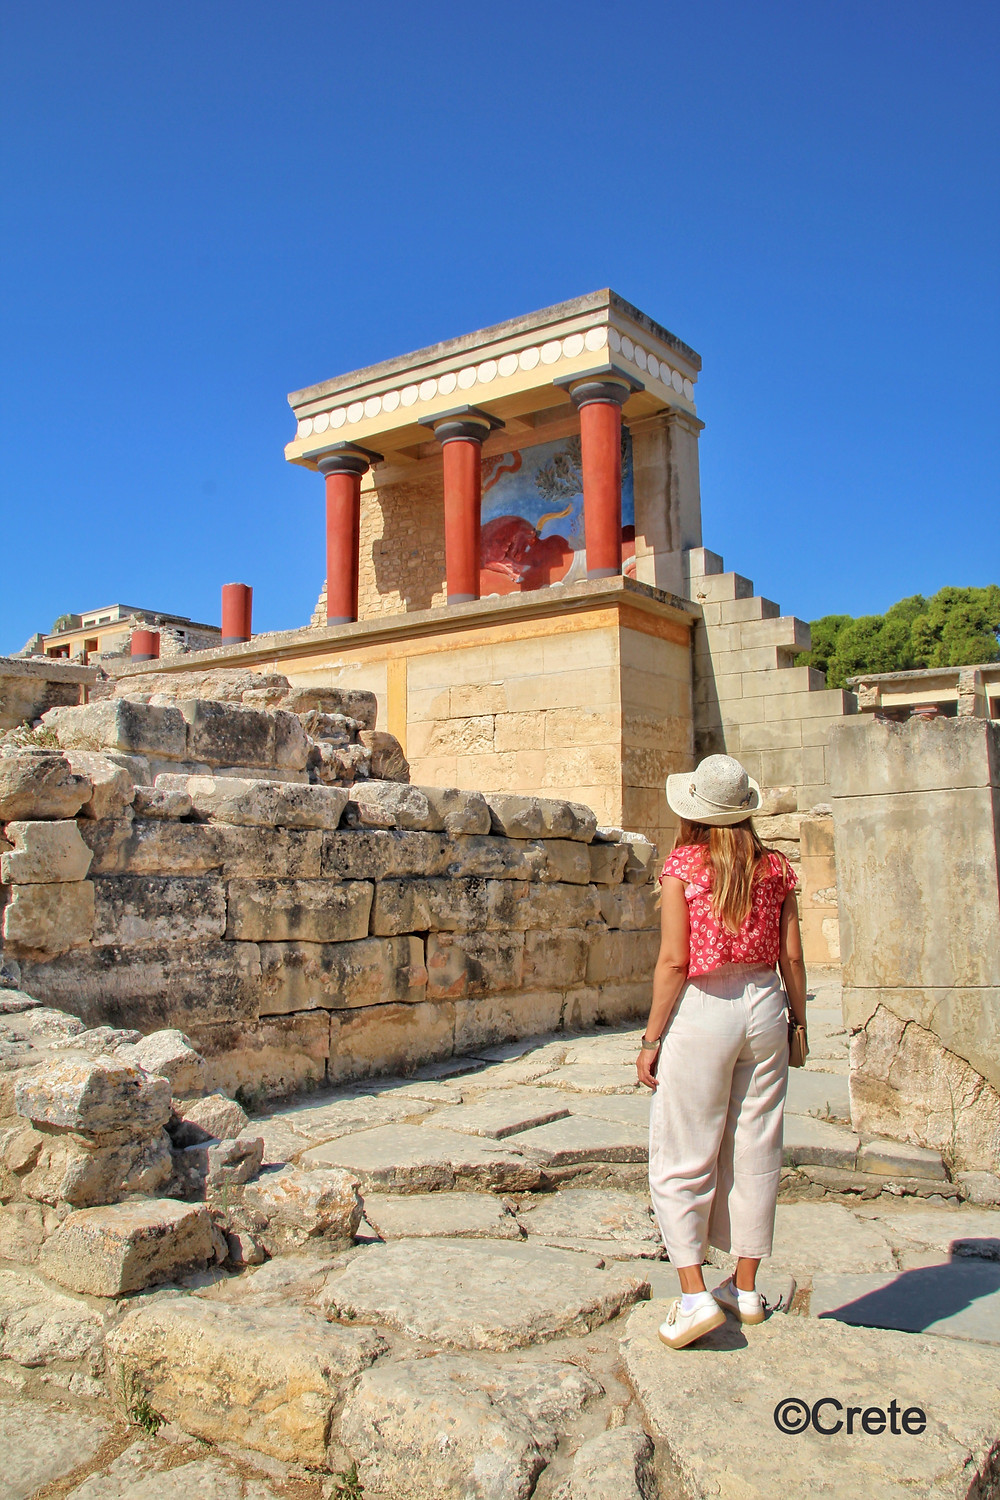 The Minoan Palace at Knossos is said to have been the seat of King Minos the ruler of the Minoan civilisation and is the most famous of the Minoan palaces on the island of Crete, Greece.